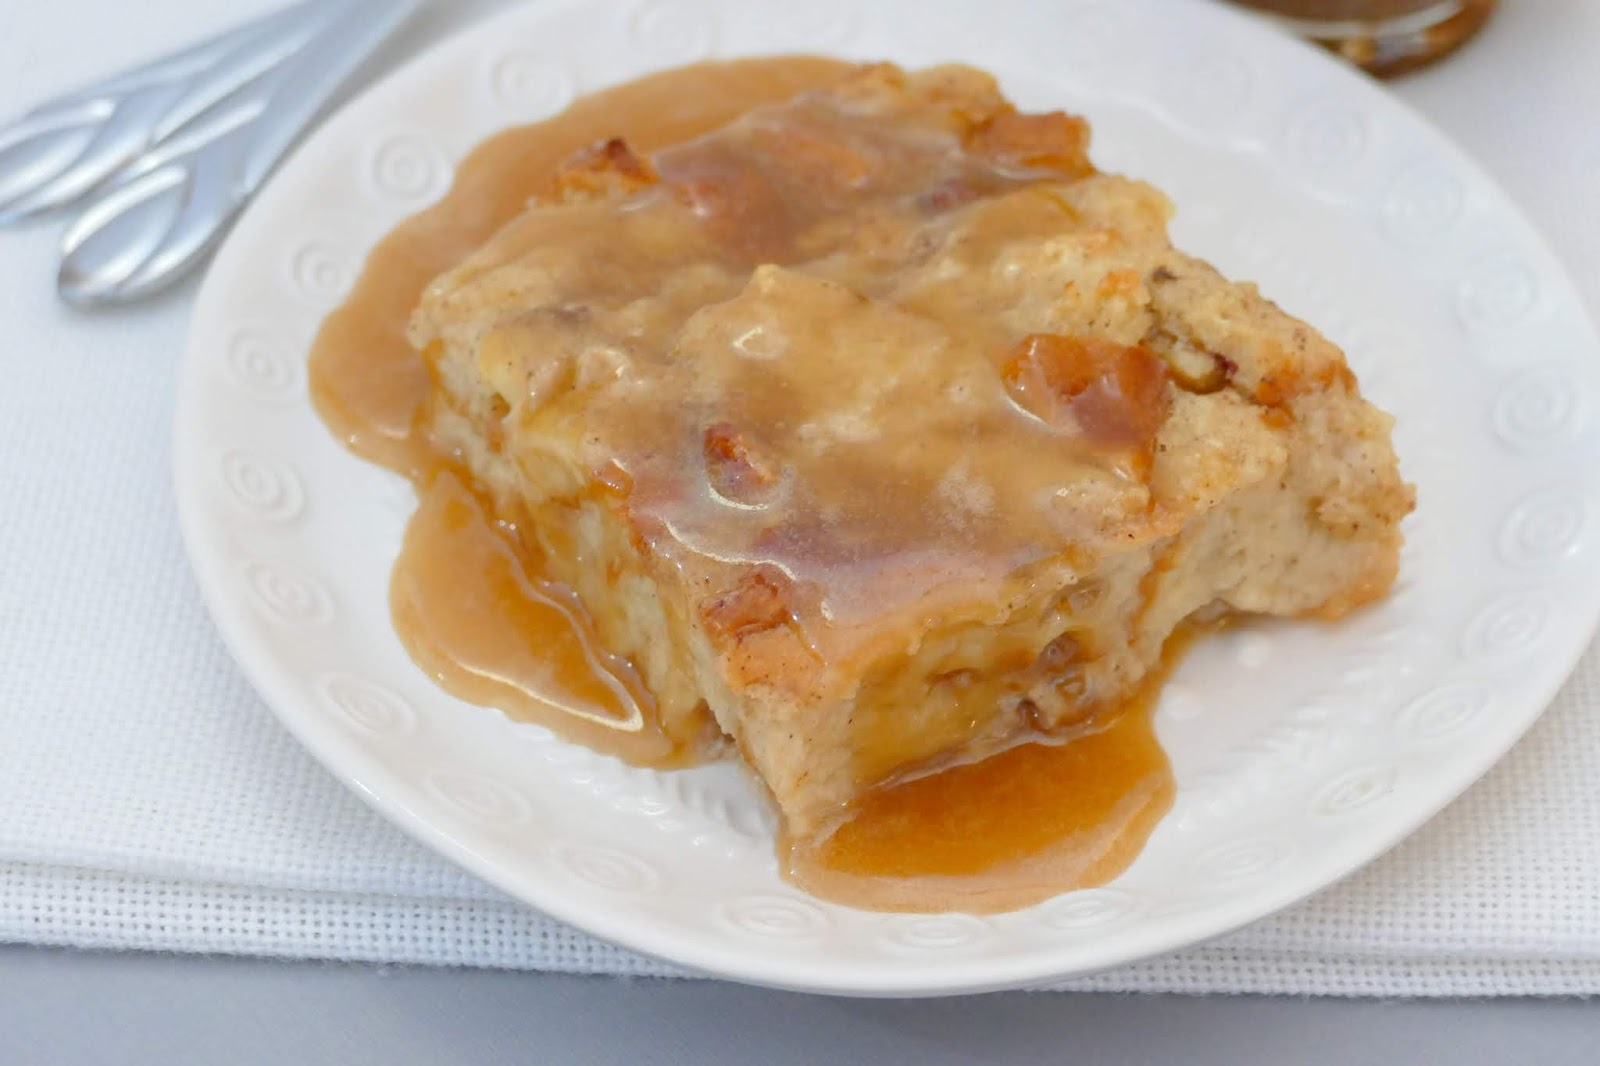 This heavenly dessert is such a great way to use ripe bananas and day old Hawaiian buns! Drizzle caramel sauce over the top for an easy and decadent dessert for any occasion! Double the recipe for a bigger crowd! Great for breakfast or brunch too!